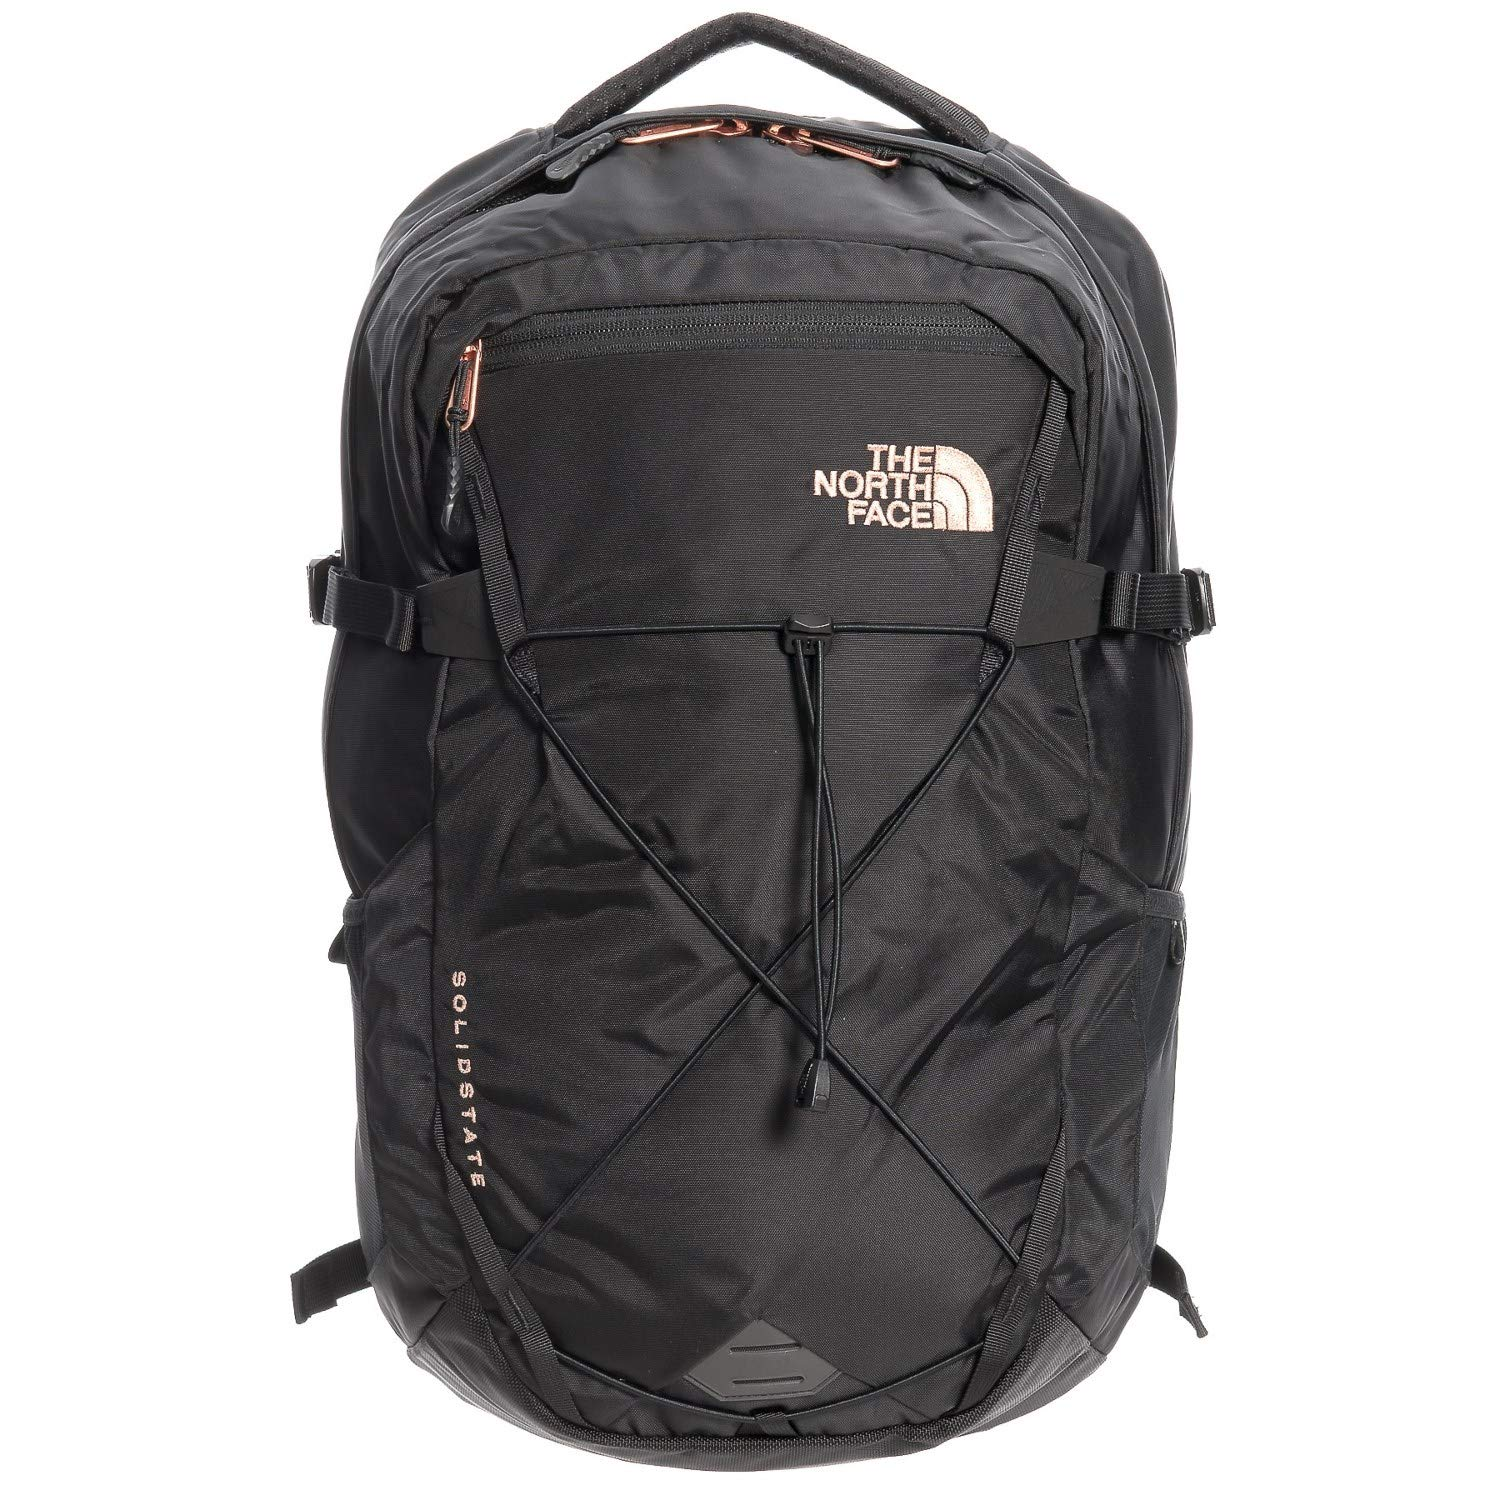 Amazon.com: The North Face Womens Solid State Laptop Backpack, Black/Rose Gold: Computers & Accessories